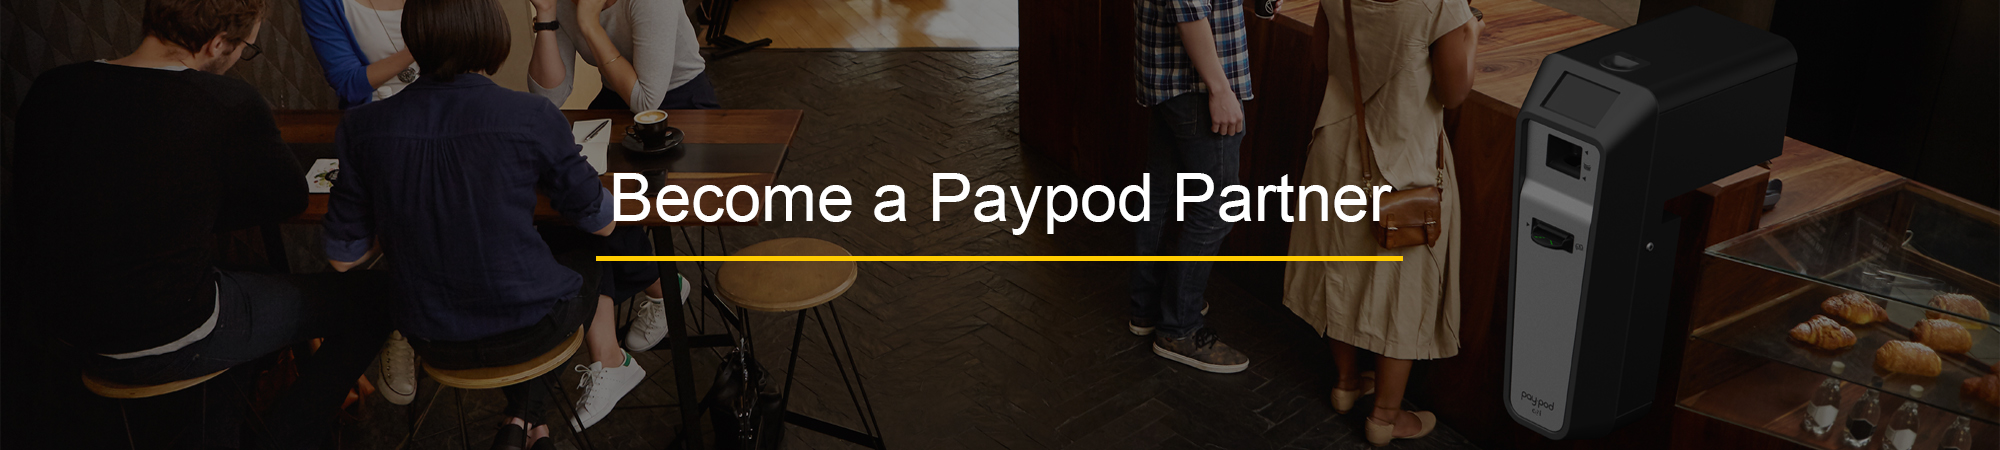 Become a Paypod Partner